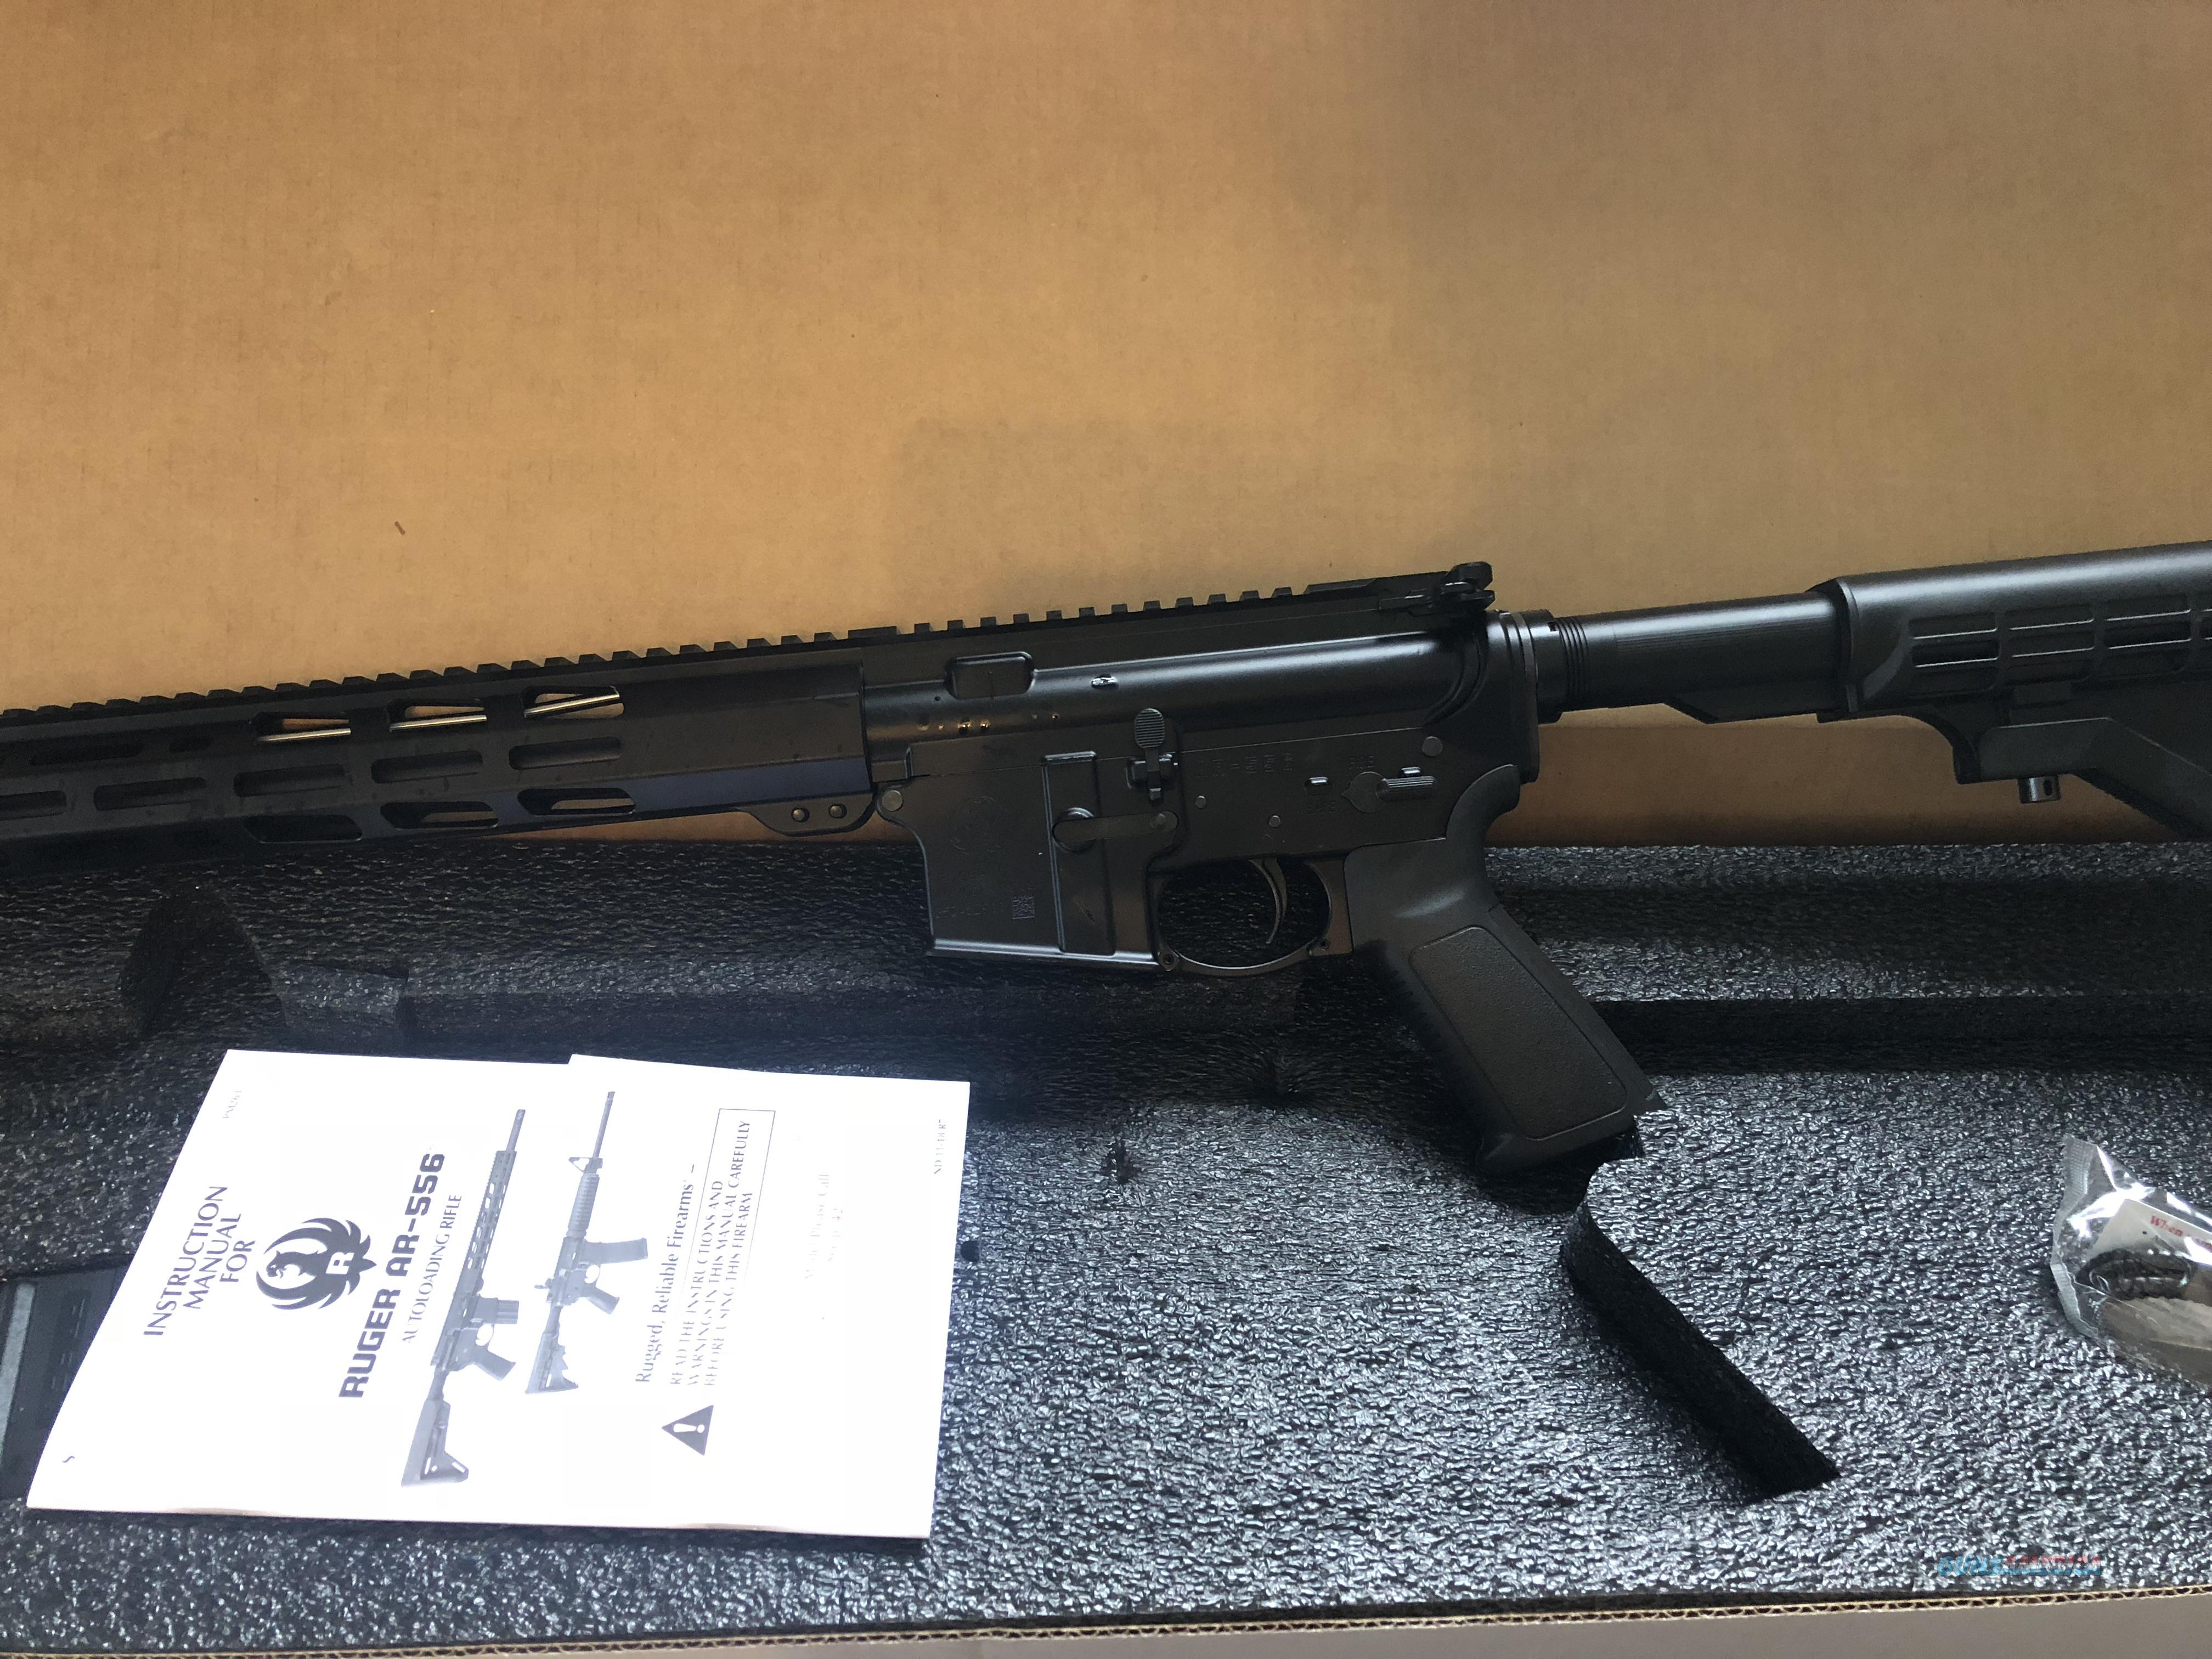 Ruger AR556 - 5.56mm/223 ** SHIPS FREE ** With M-lock Forend * Catalog Number 8529  Guns > Rifles > Ruger Rifles > AR Series